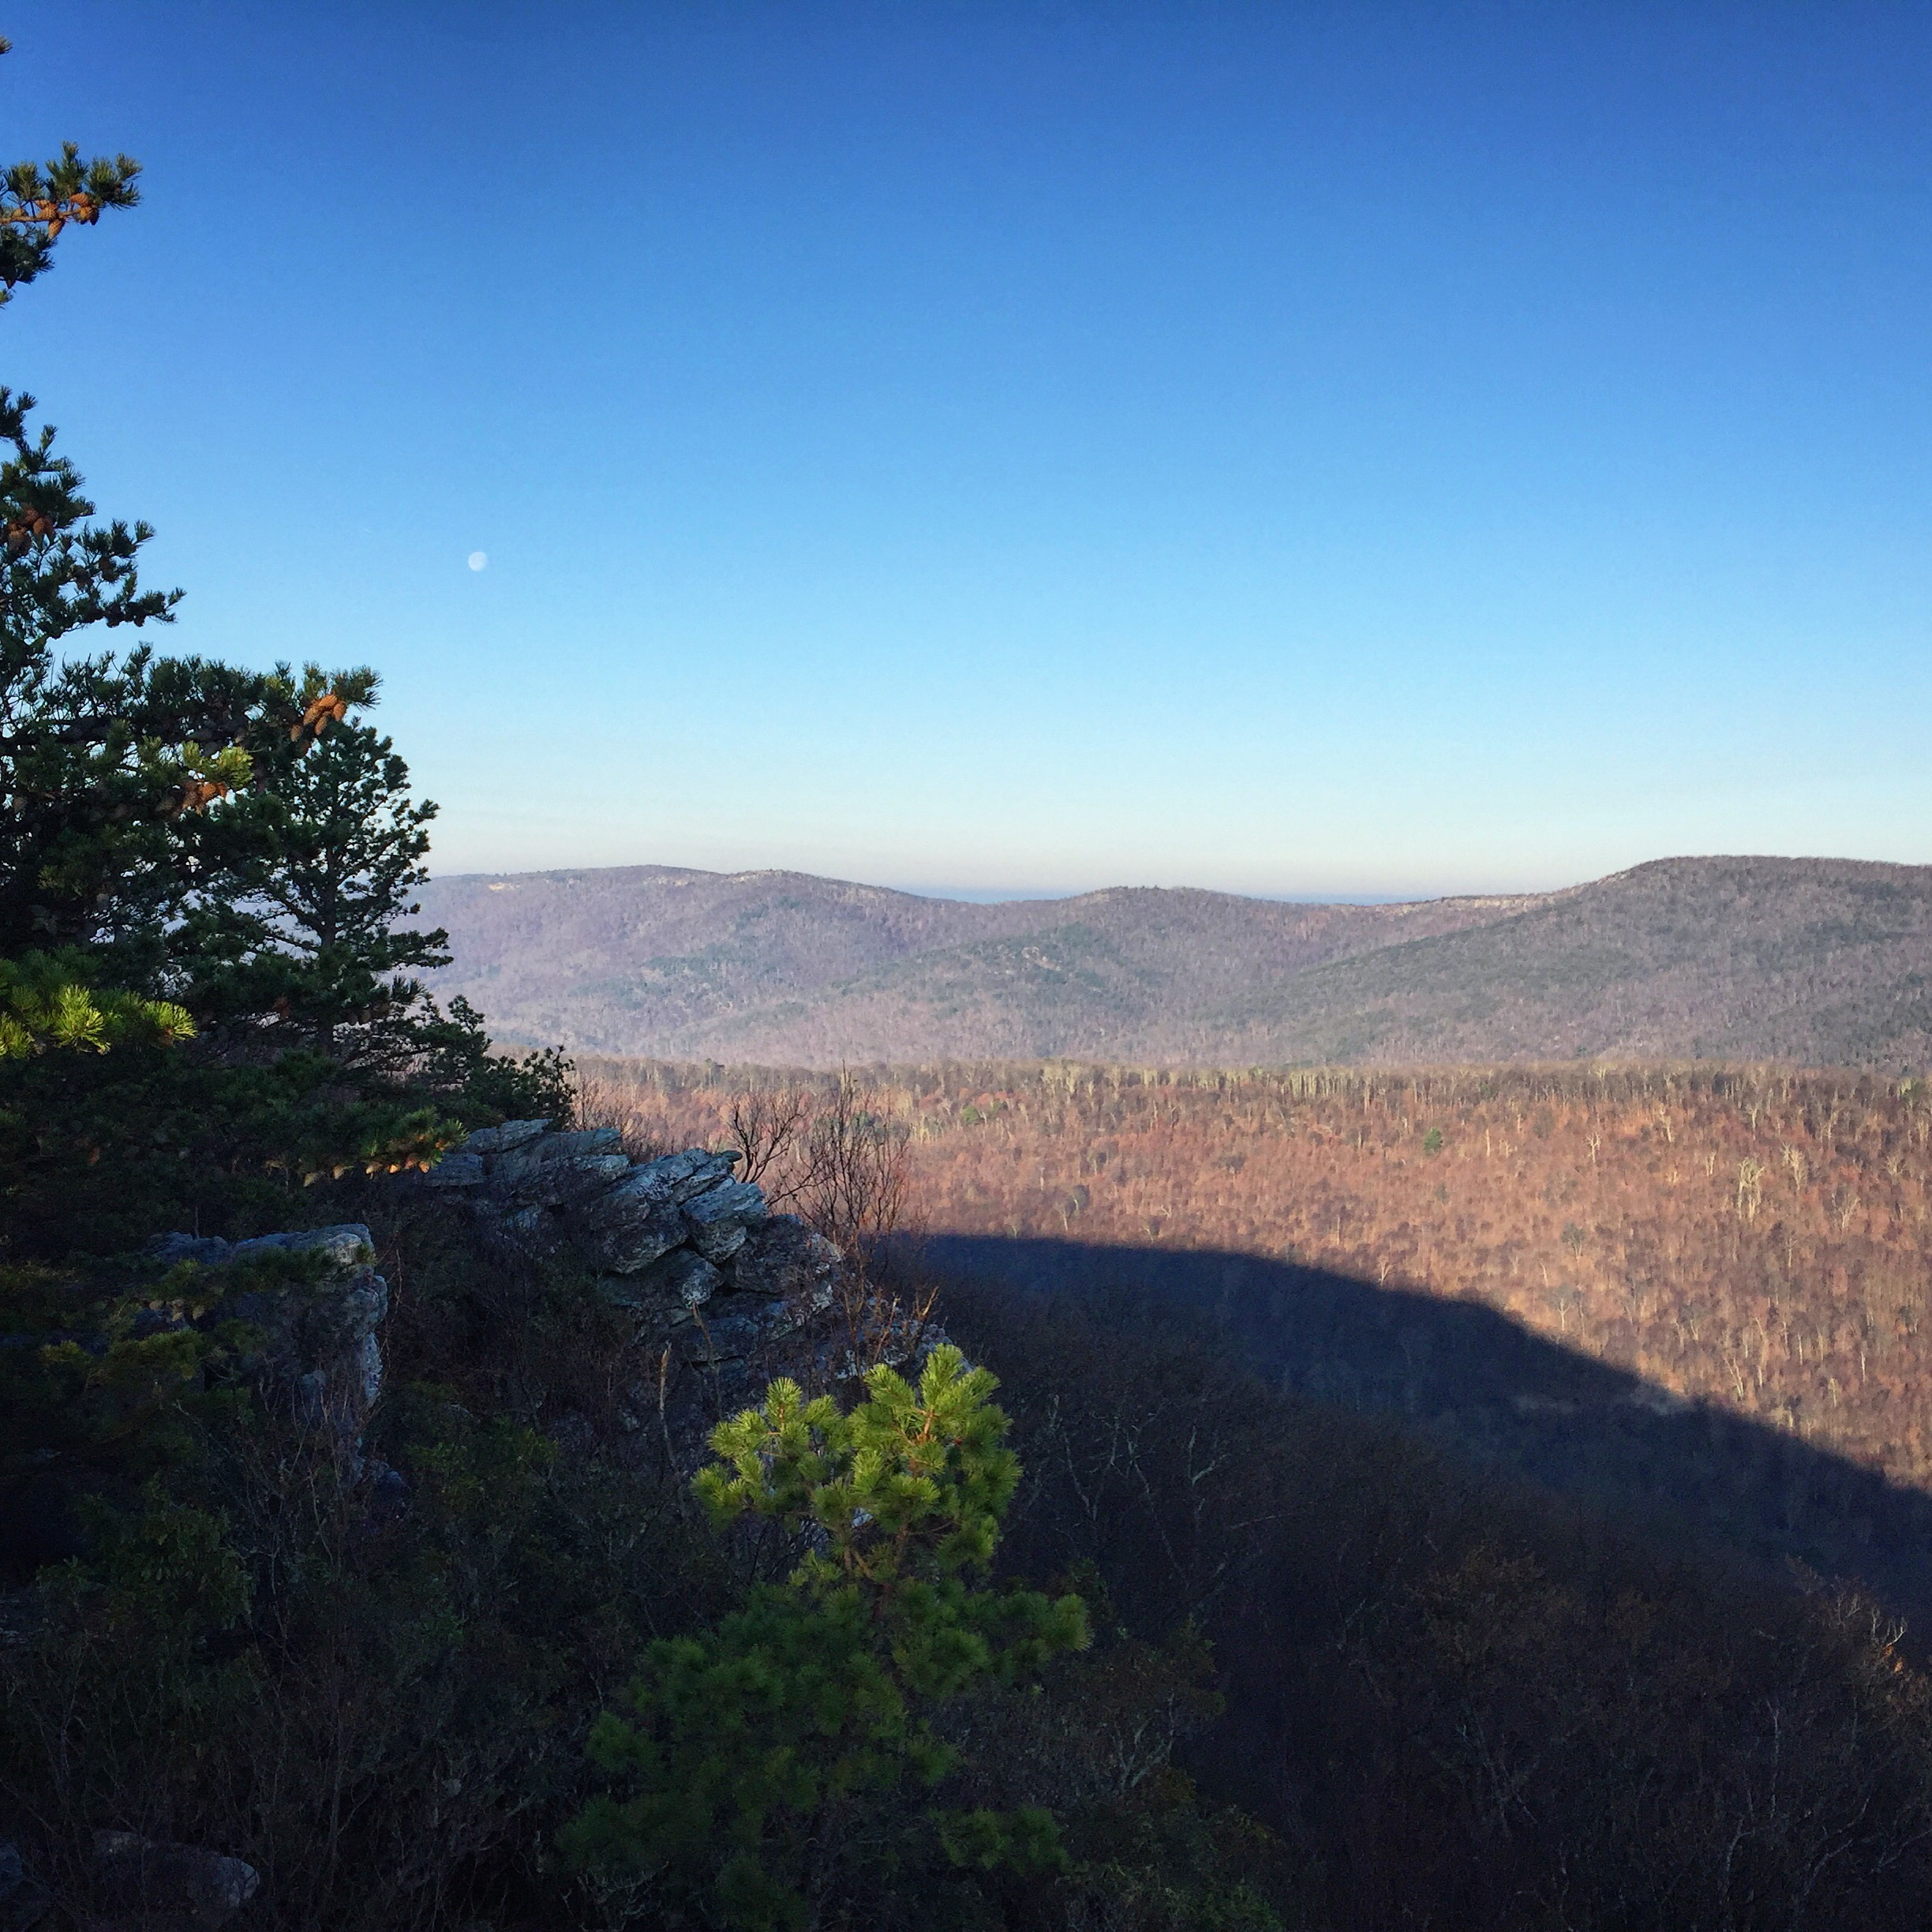 Moon over the Ridge-and-Valley Appalachians